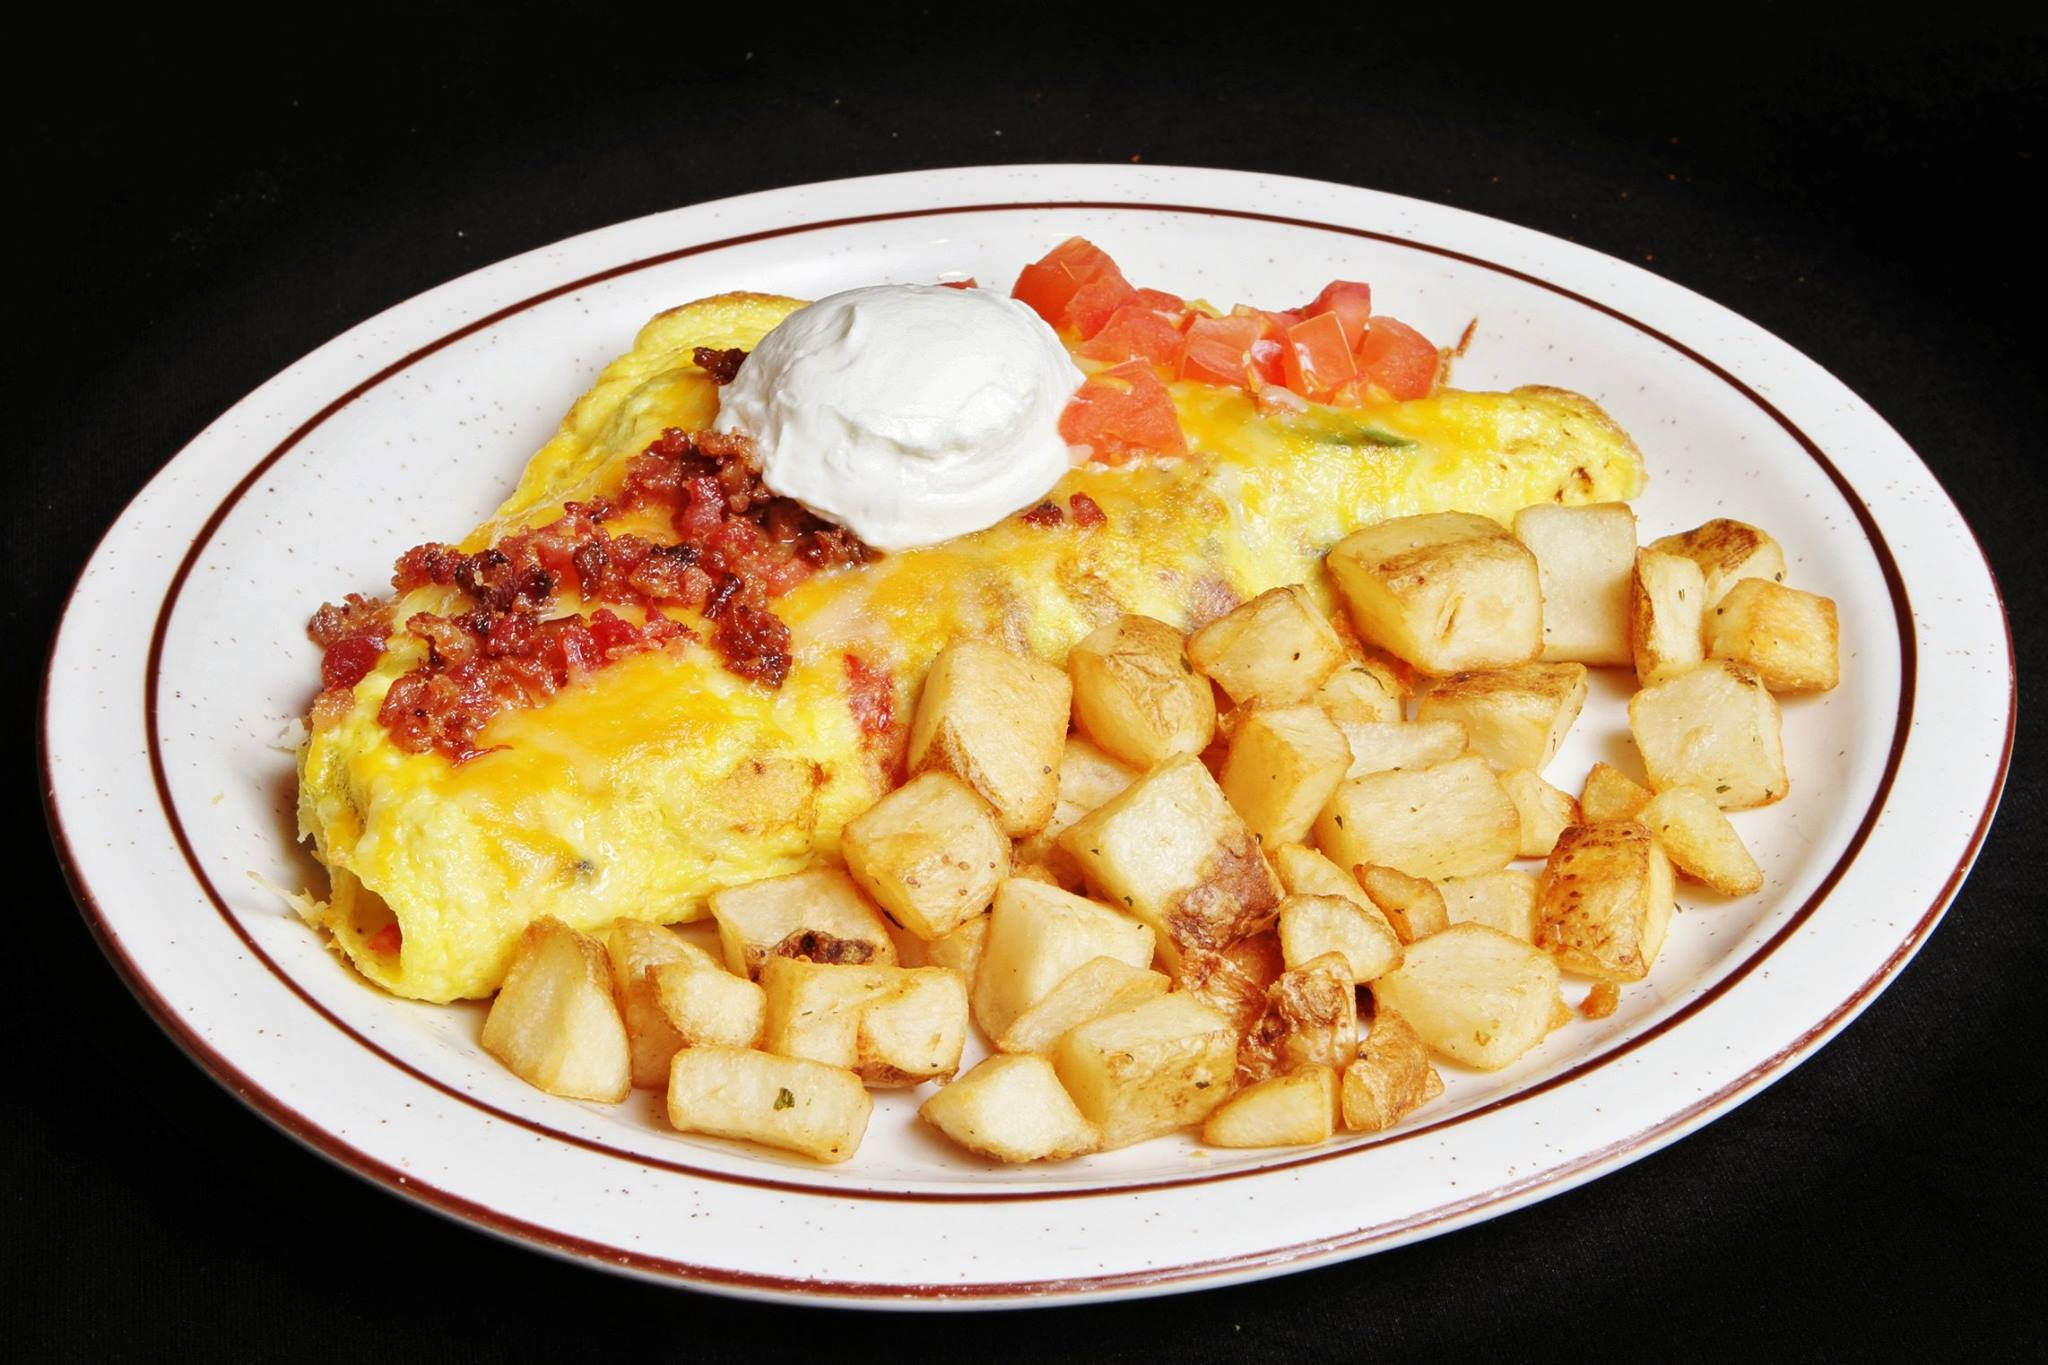 Omelet with crumbled bacon and diced tomatoes with sour cream and breakfast potatoes